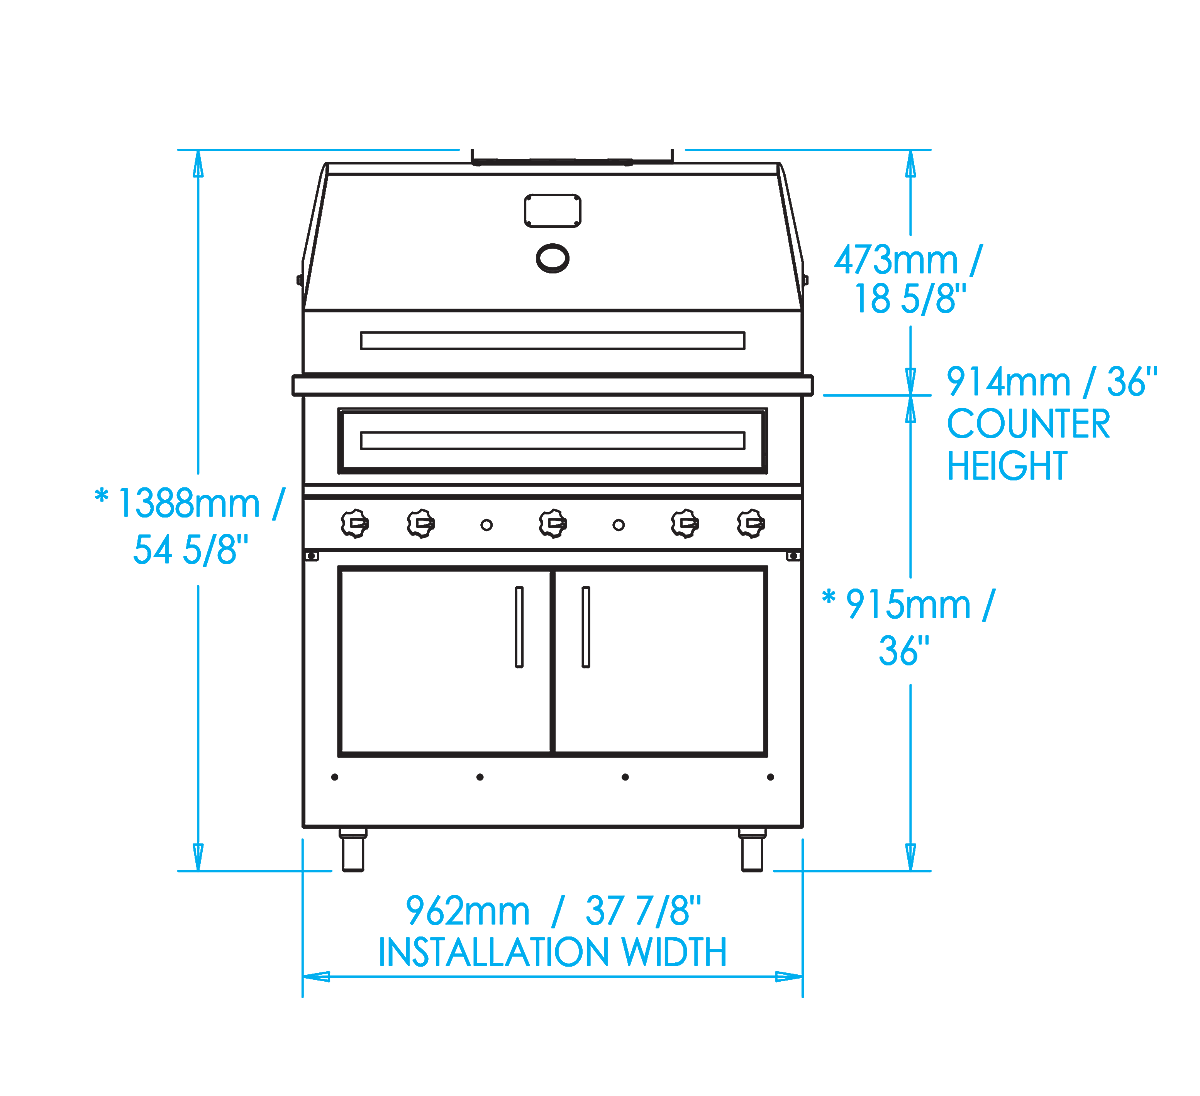 K750 Built-in Hybrid Fire Grill Dimensions Image